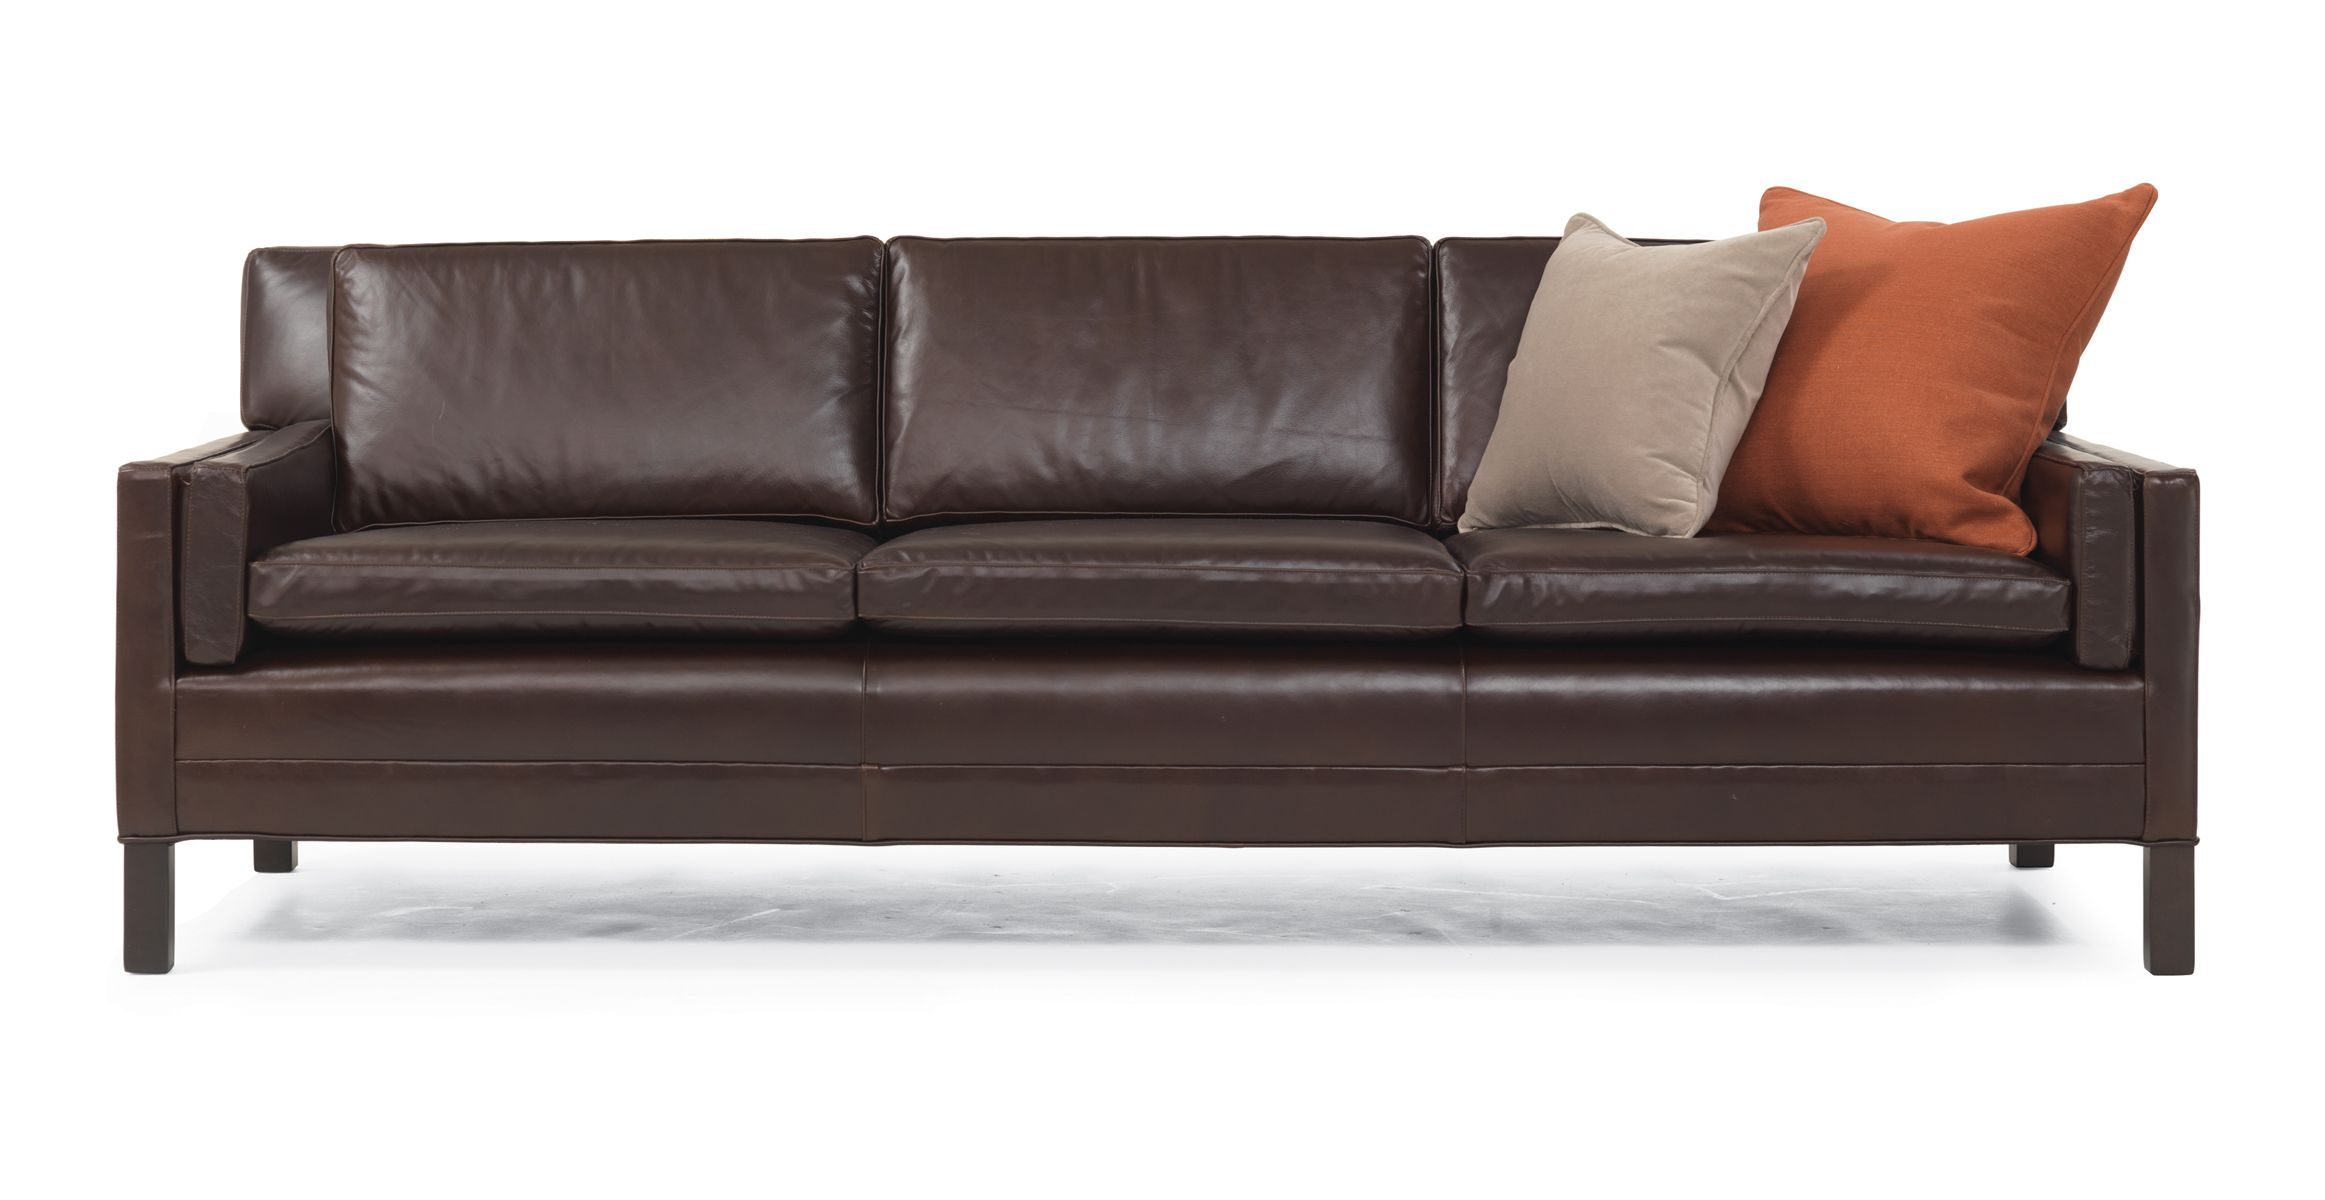 extra long leather sofa. Extra Long Leather Couch - Whitman Collection (for The Office Someday) Sofa H